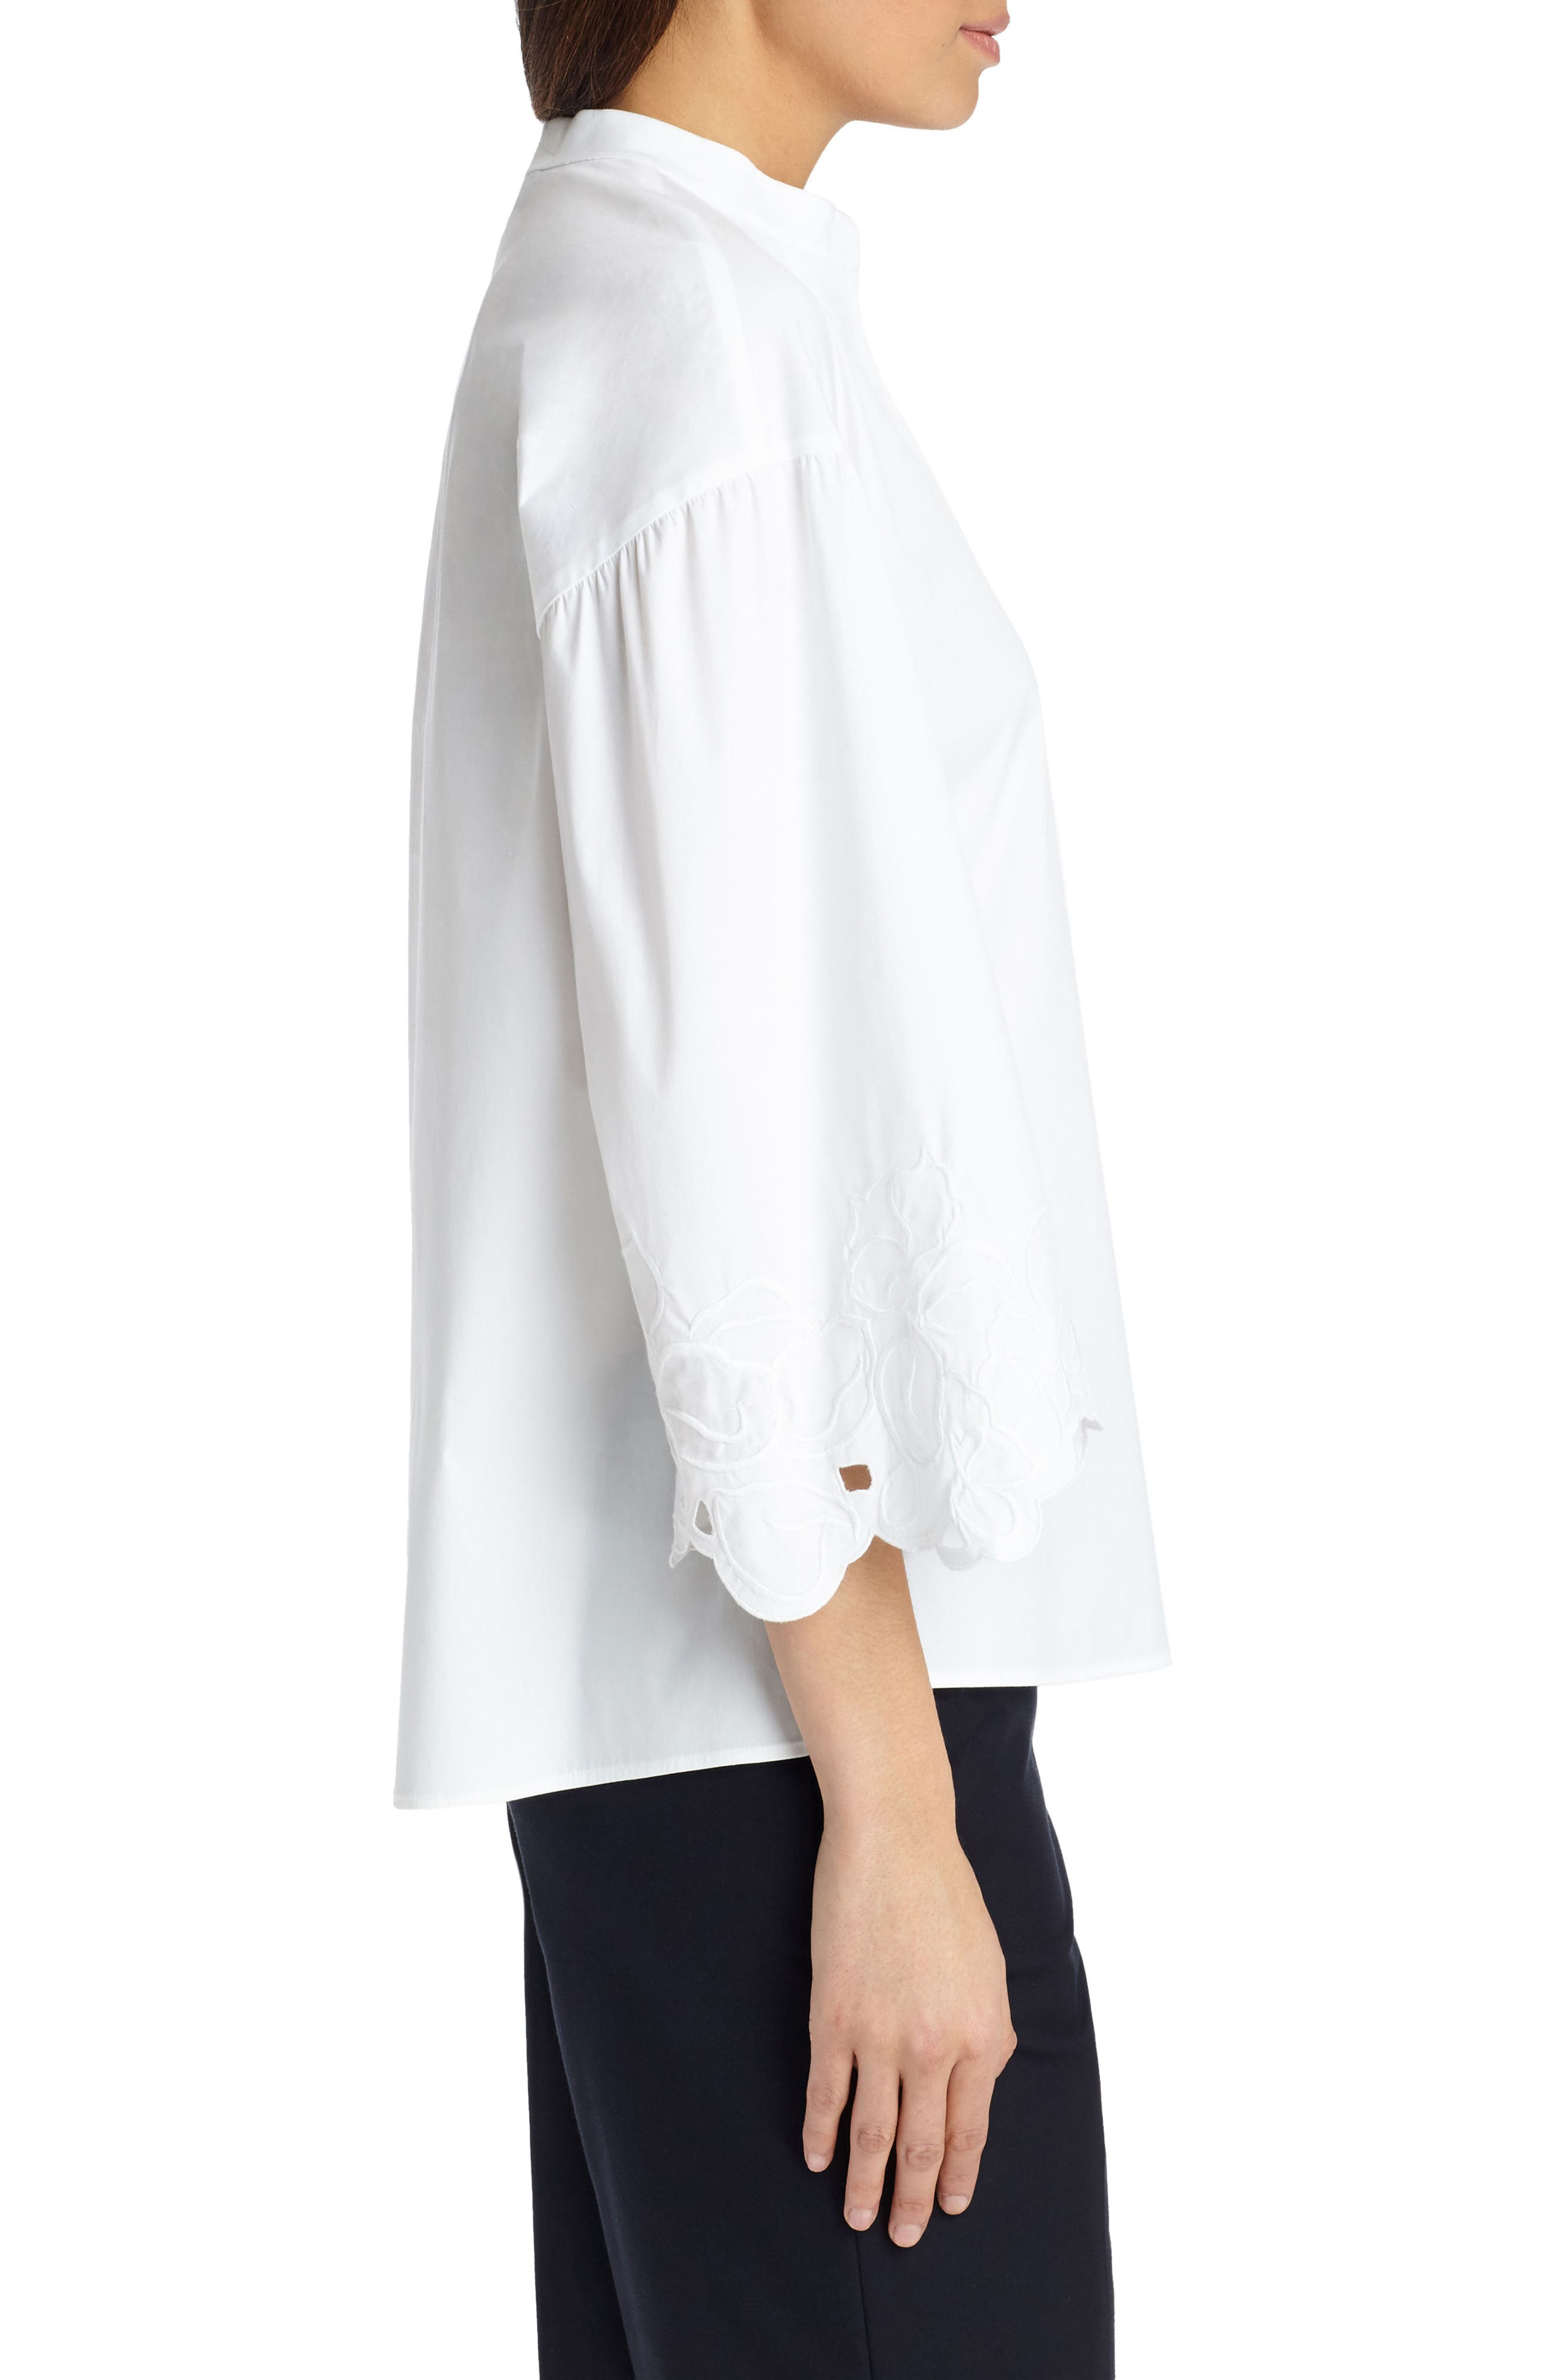 Carla Embroidered Blouse,                             Alternate thumbnail 3, color,